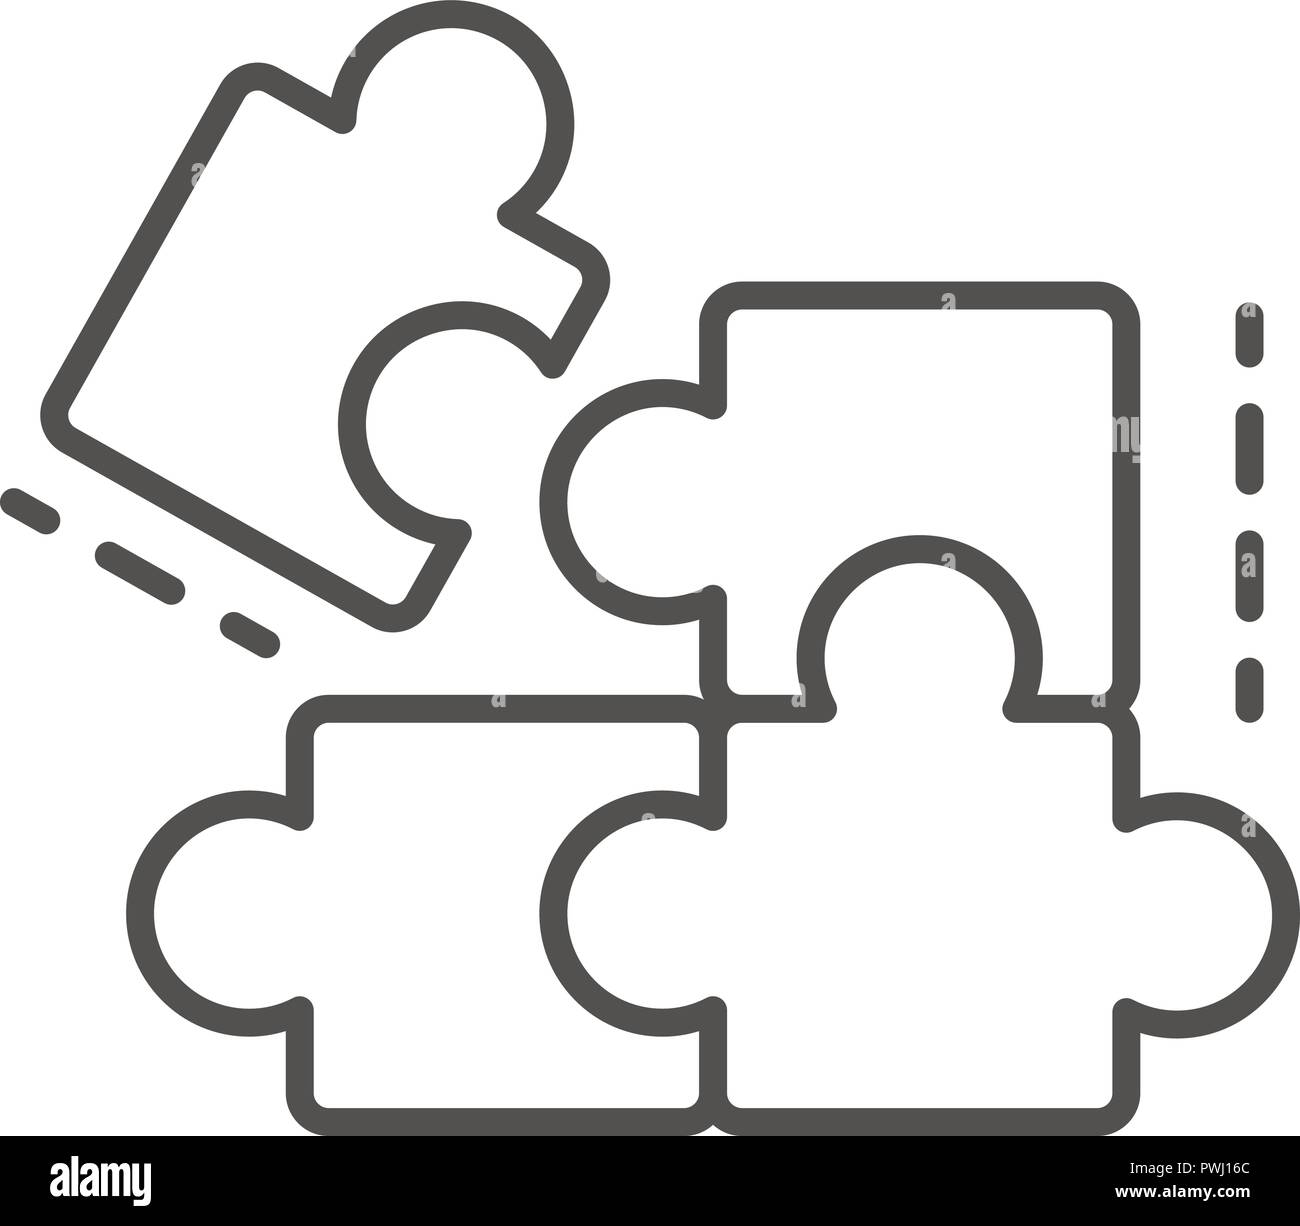 complete puzzle solution icon outline style stock vector art